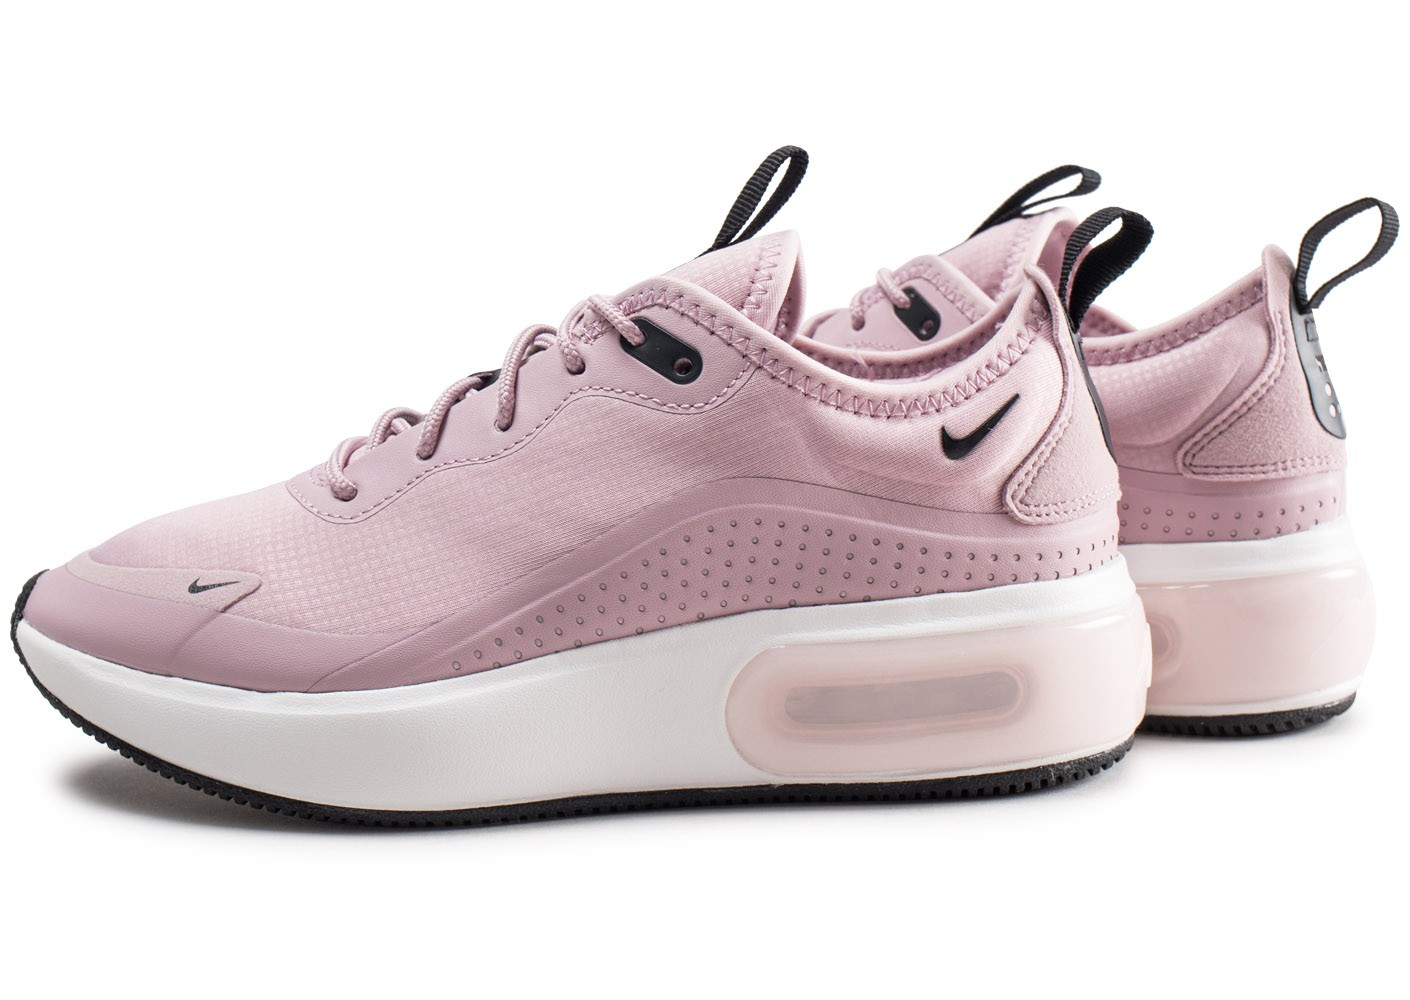 Nike Air Max Dia rose - Chaussures Baskets femme - Chausport